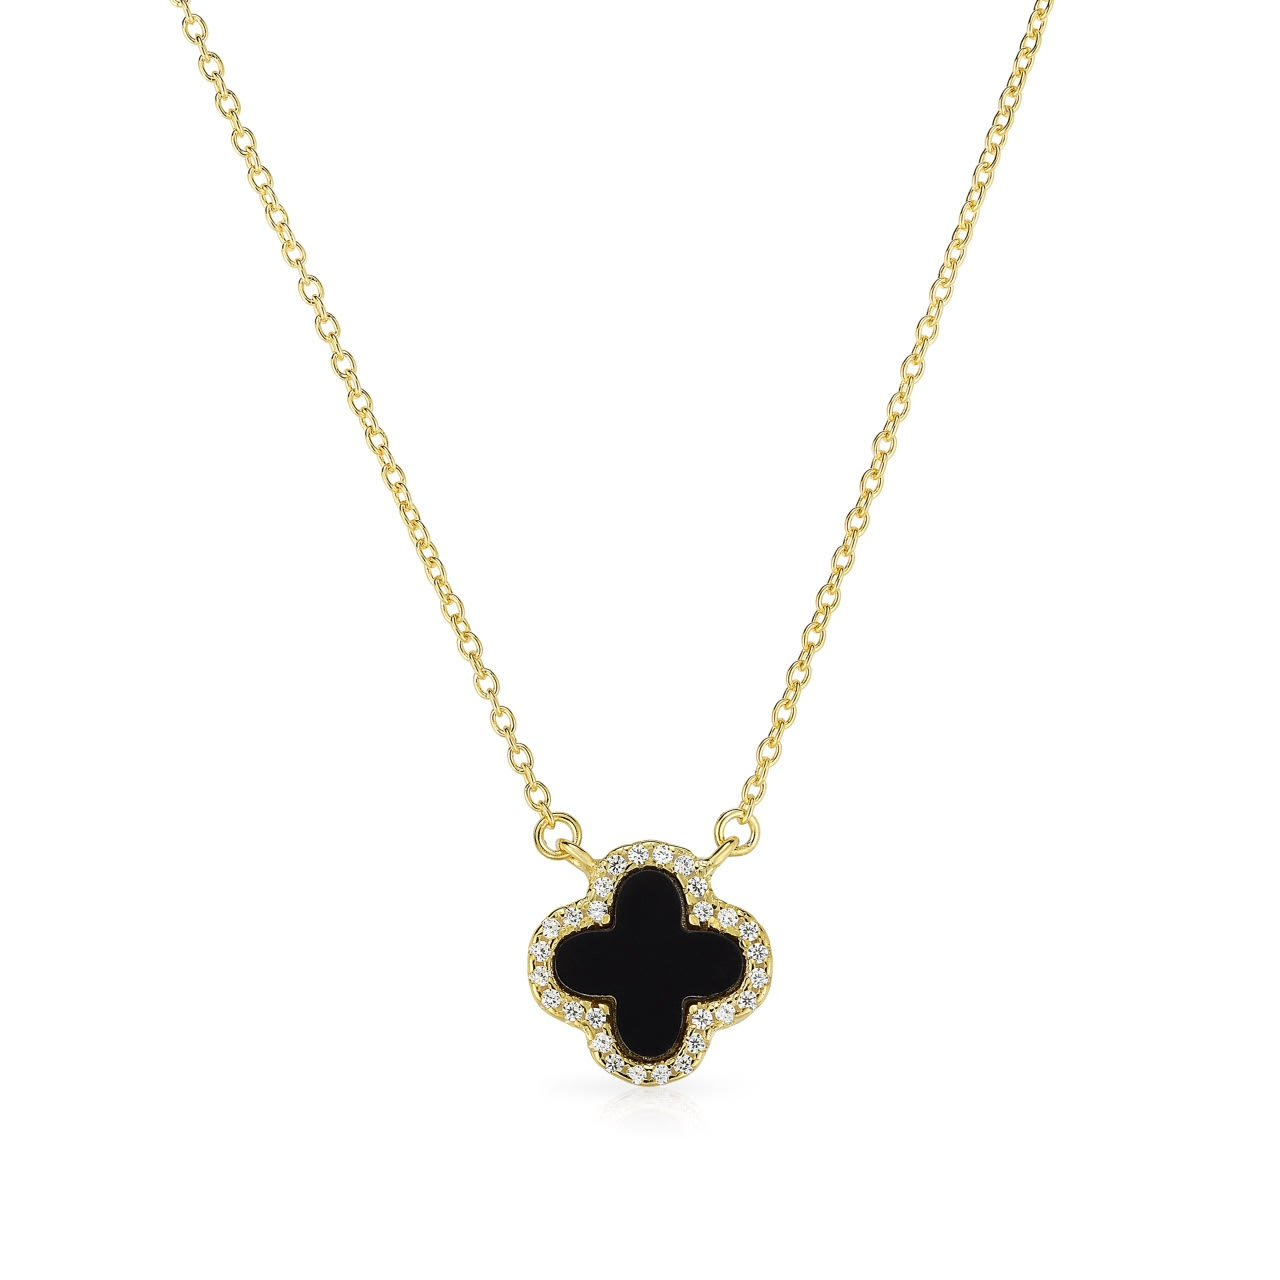 US/_JWE/_B07875QH28 Unique Royal Jewelry 925 Solid Sterling Silver Black Onyx and Cubic Zirconia Small Four Leaf Clover Necklace with Adjustable Length